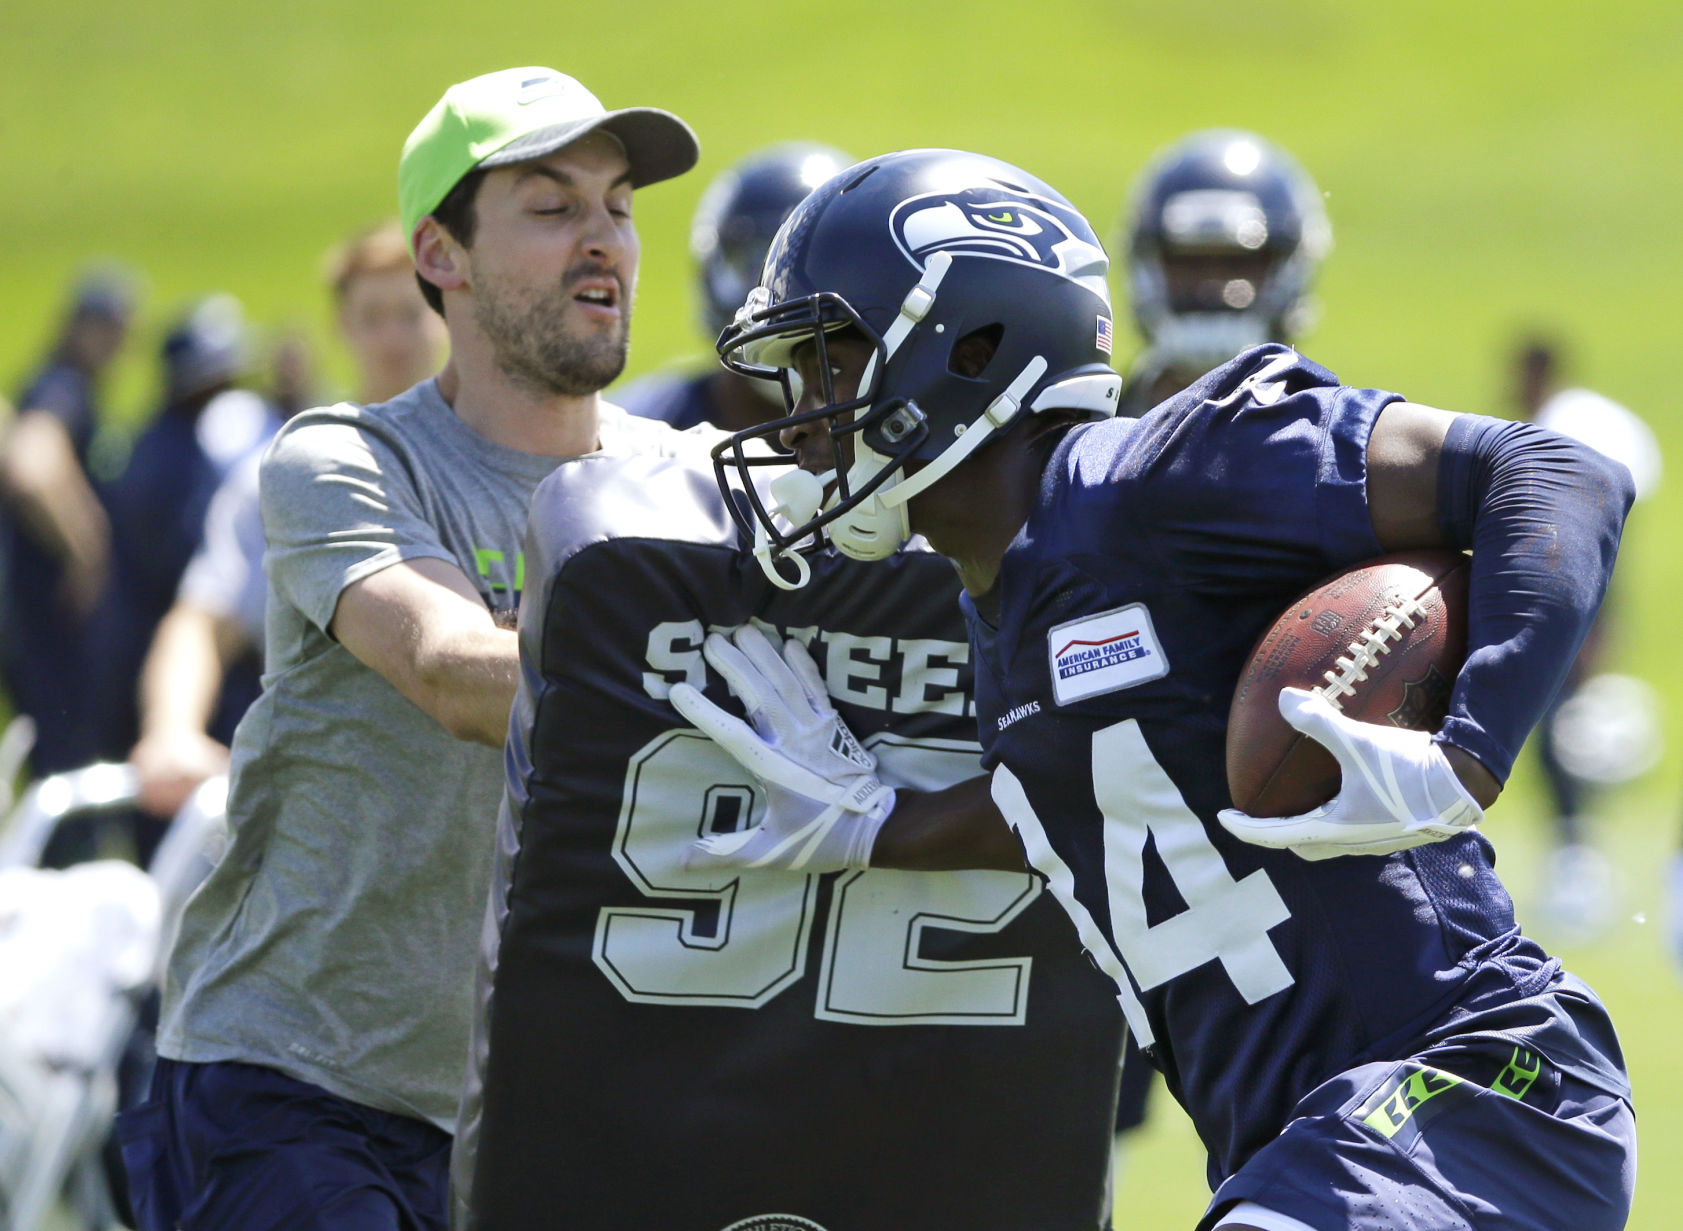 Seahawks prepare for final preseason game against Raiders